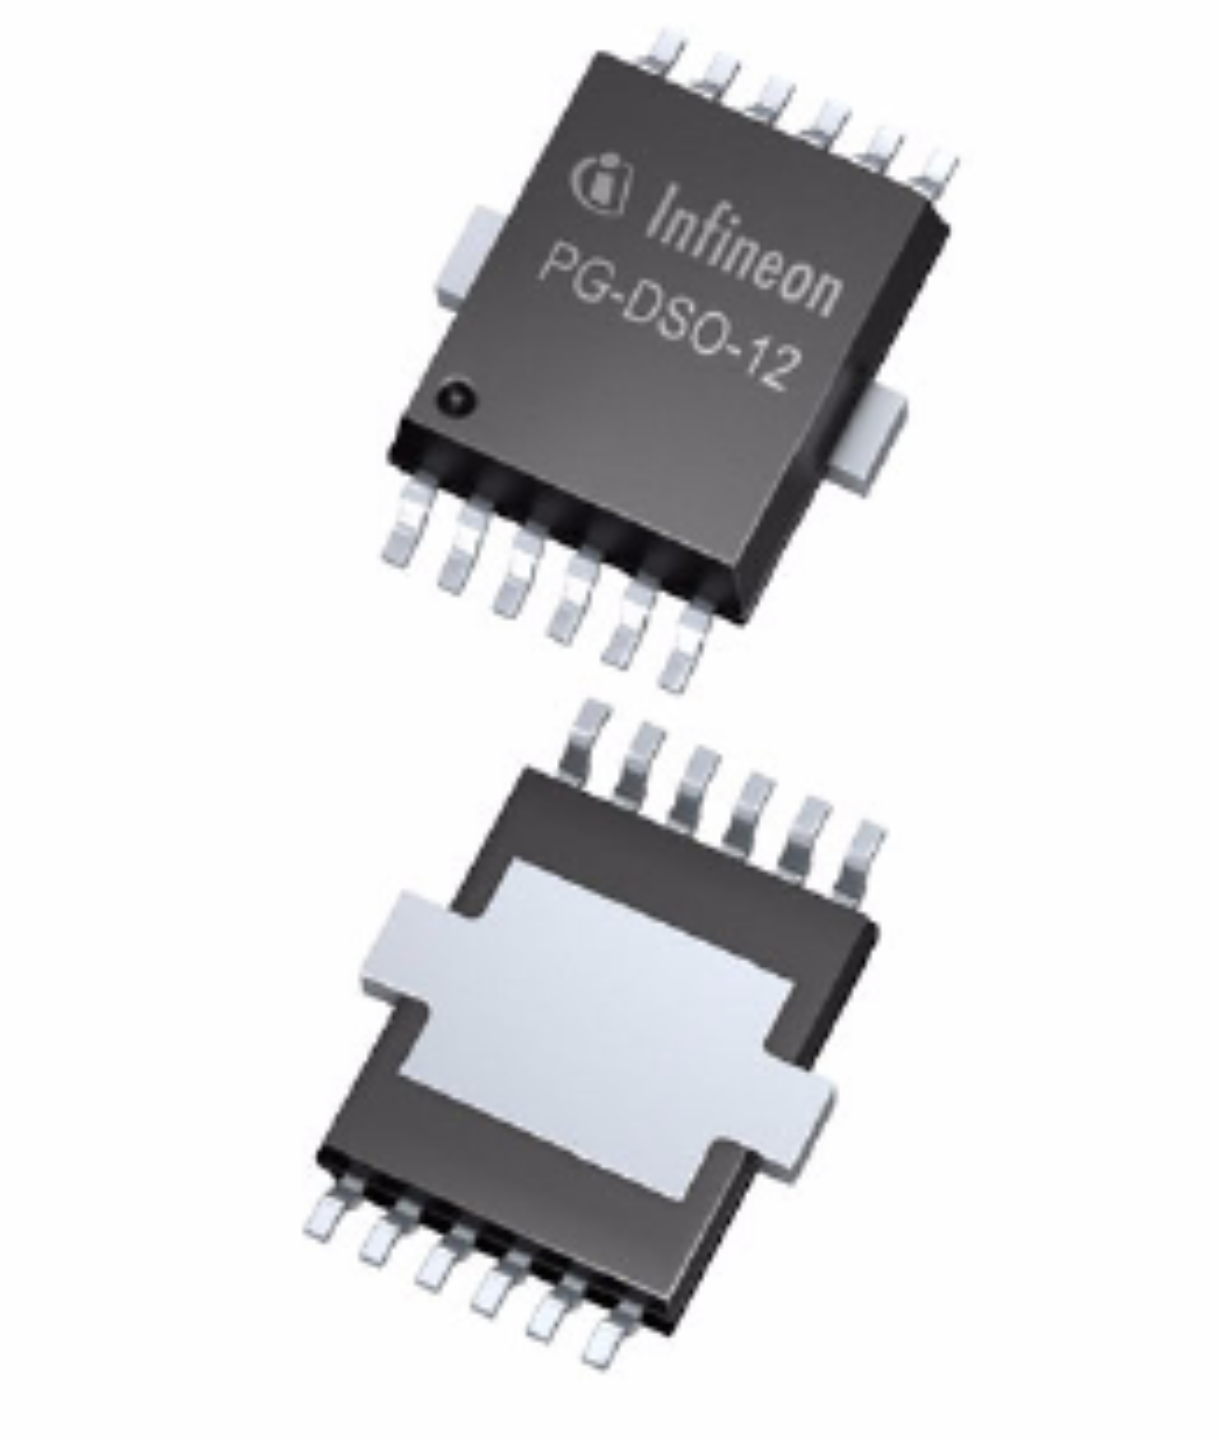 Tle8102sg Infineon Technologies Hv 317 Mosfet Voltage Regulator Circuits Images Frompo 01 05 2012 08 20 Pdf 11 Mb